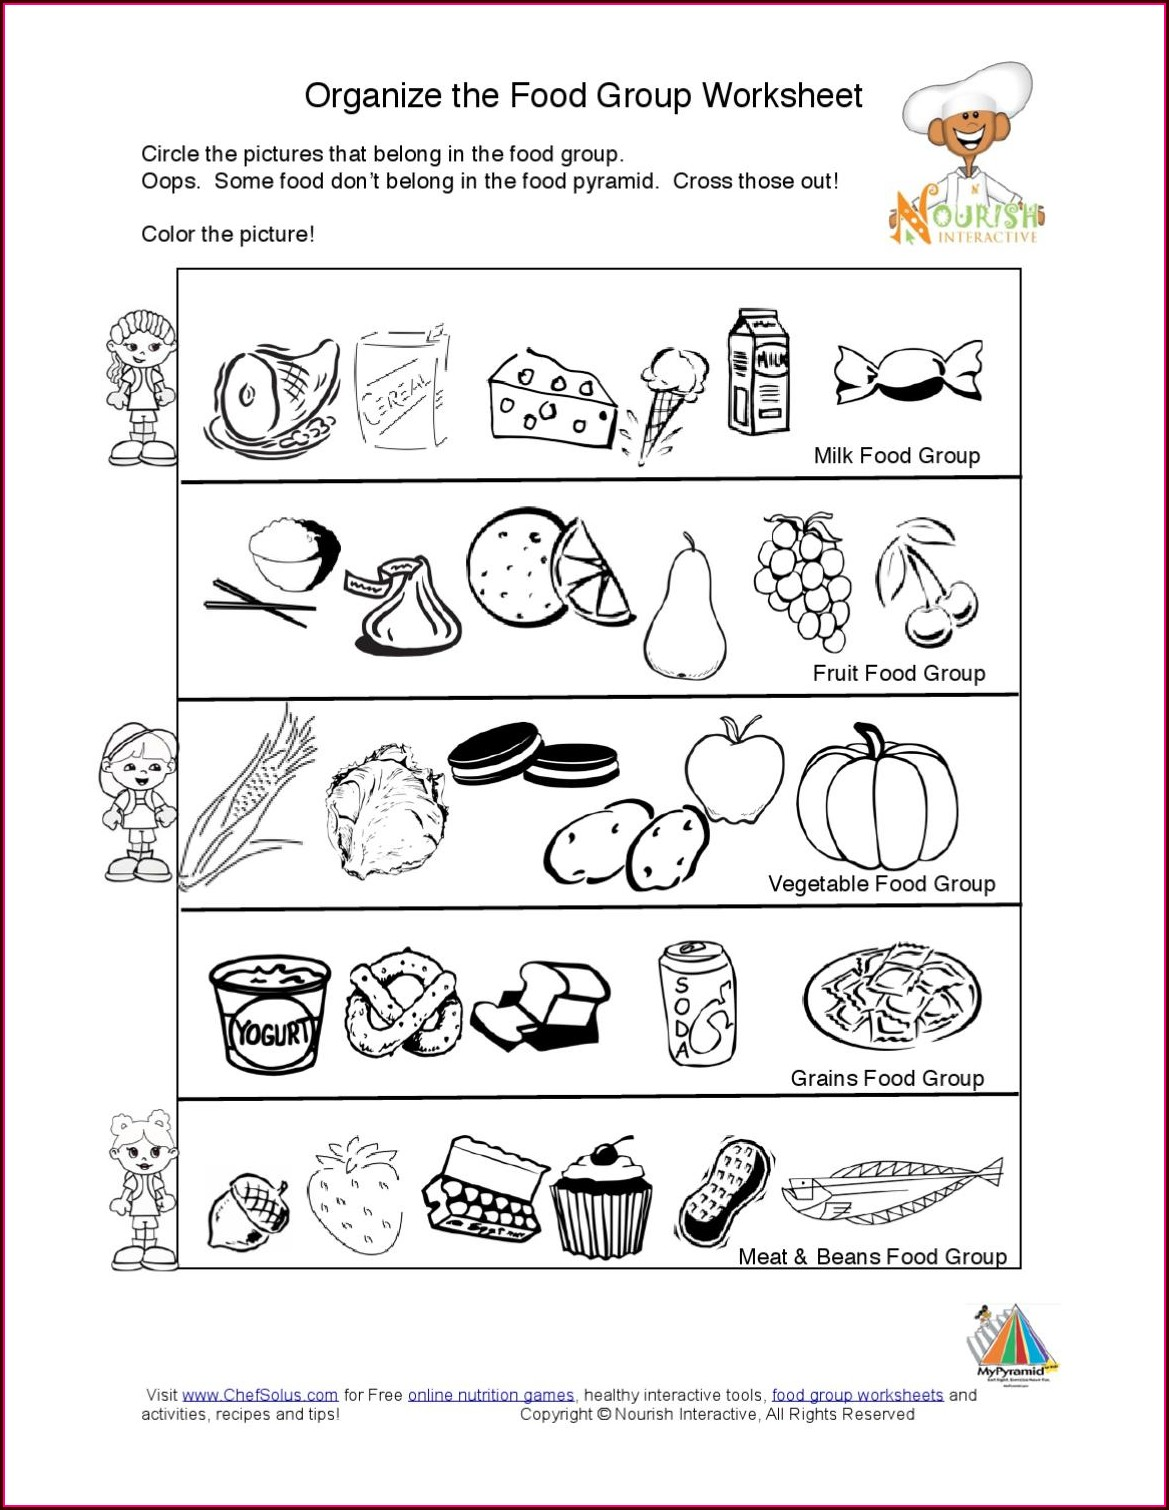 Worksheet On Food Groups For Grade 3